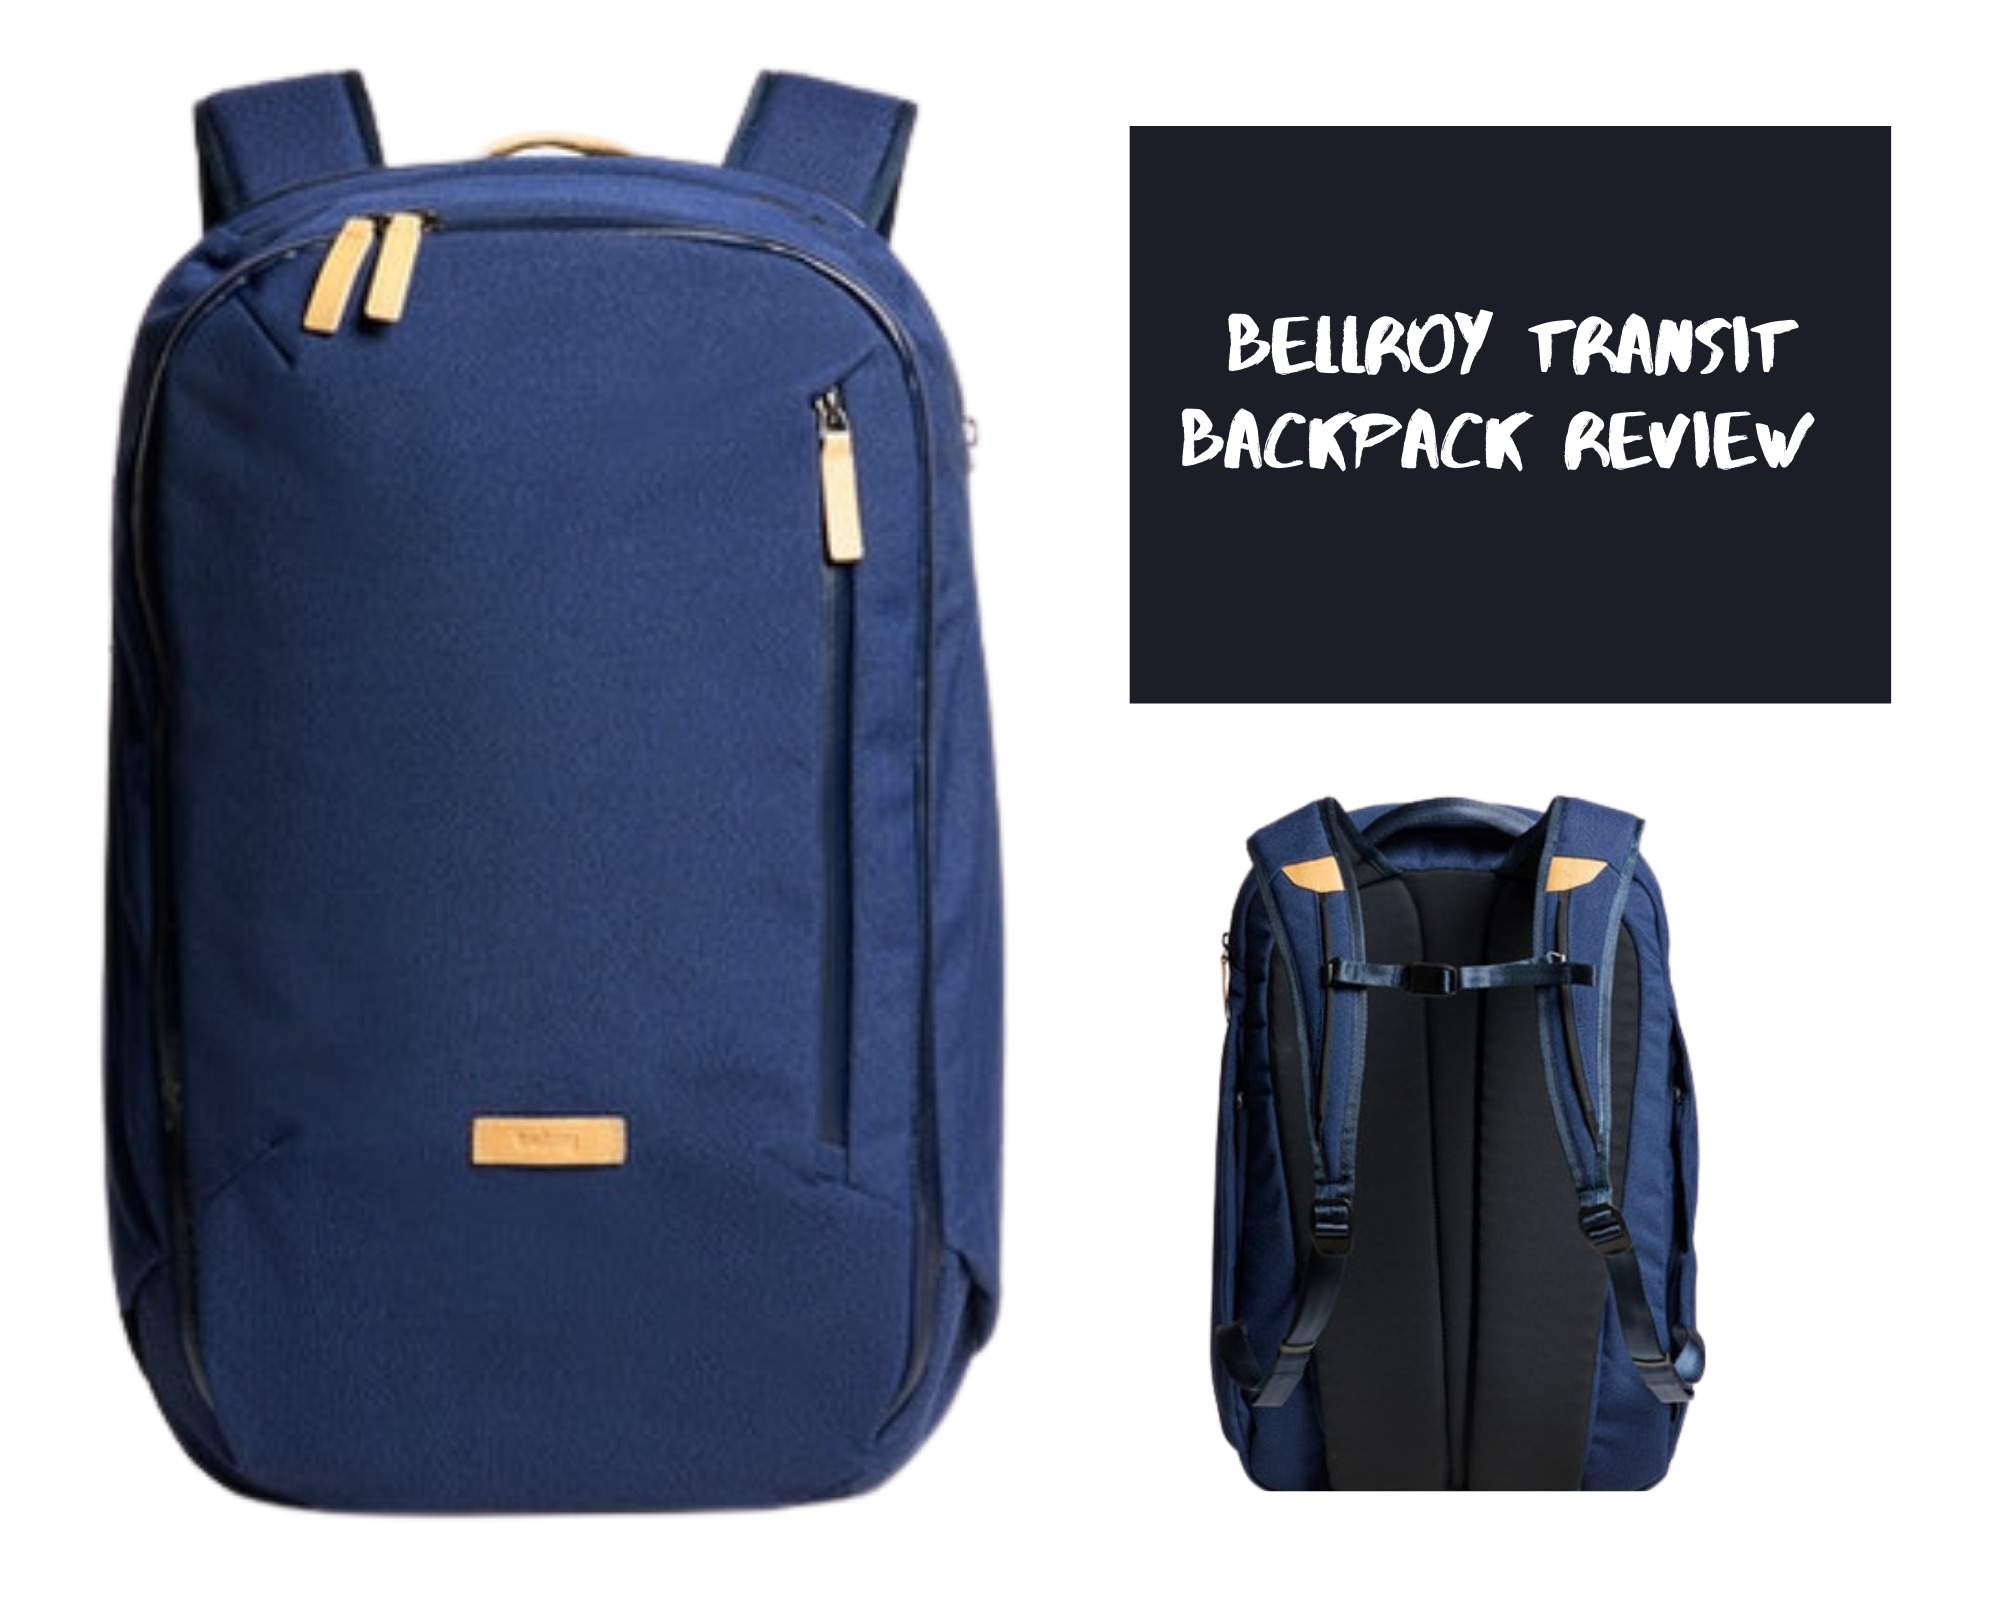 Bellroy Transit Backpack Review: feature